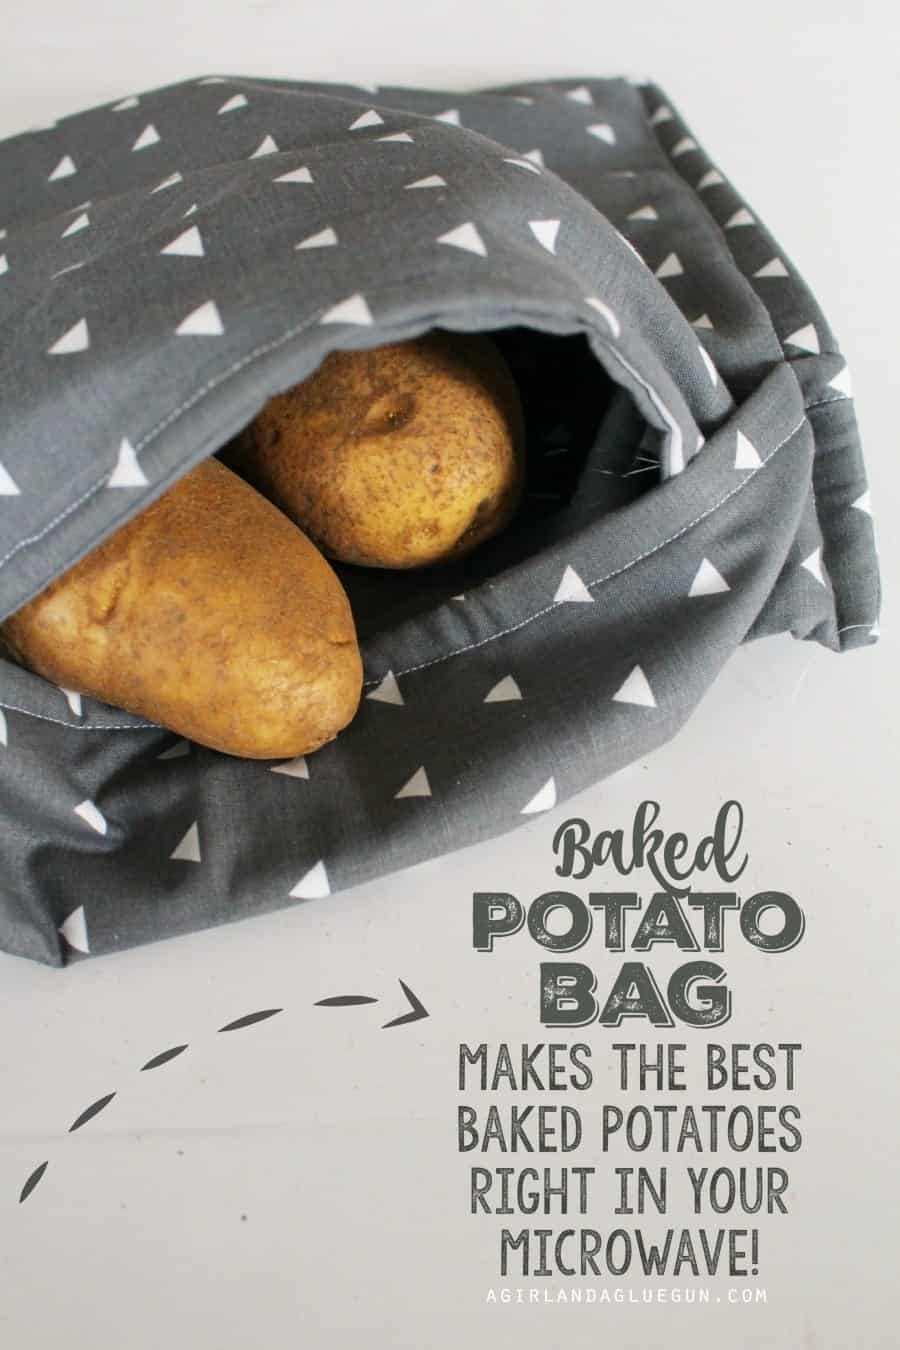 Baked Potato Bag Make The Softest And Yummiest Potatoes Right In Your Microwave Dsc00071